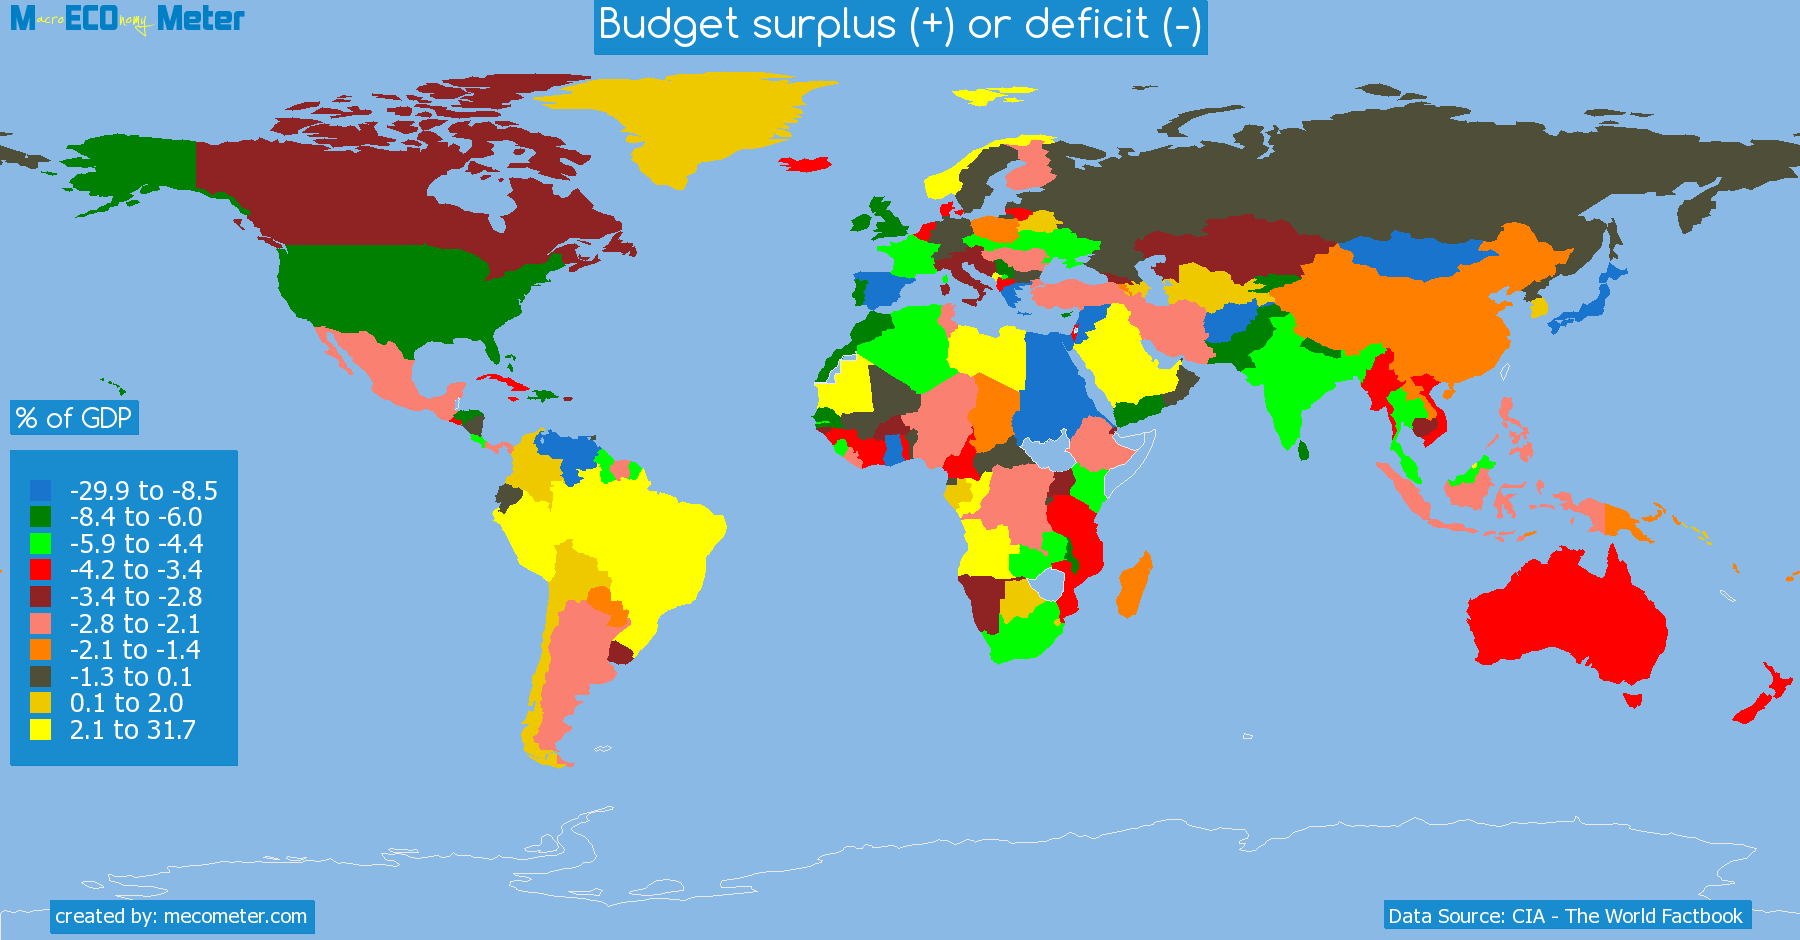 list of countries by Budget surplus (+) or deficit (-)